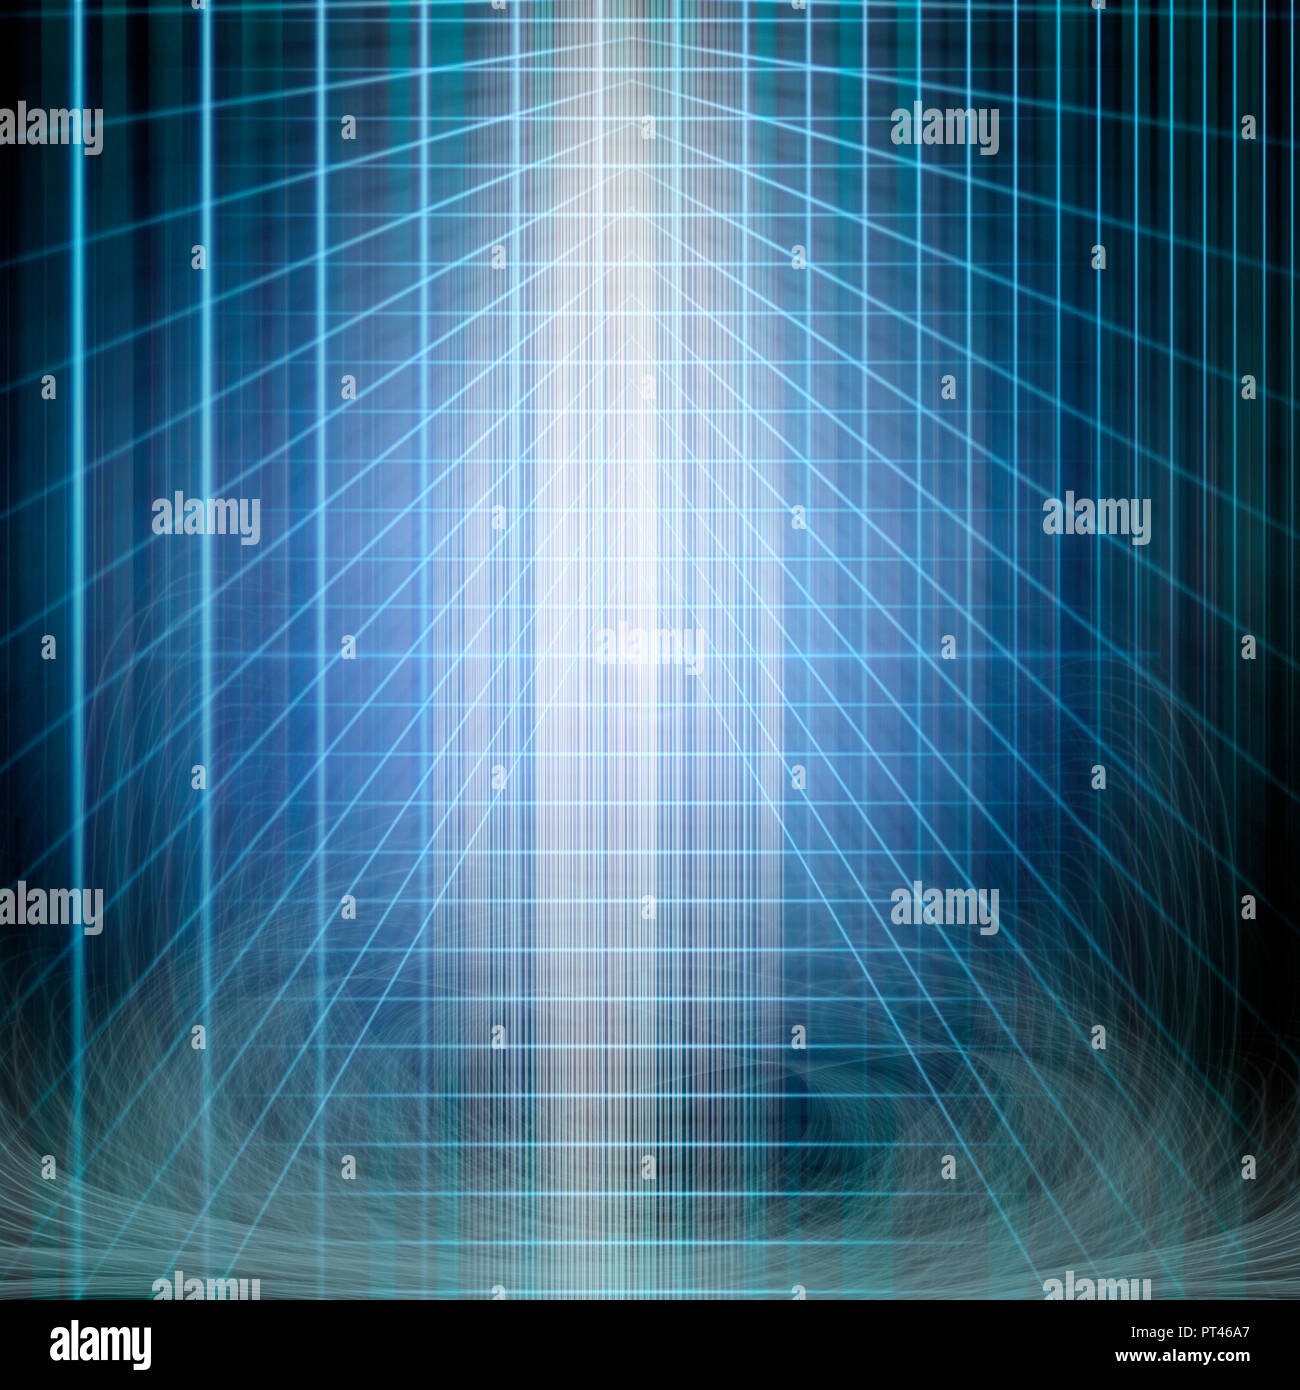 background image of abstract structural blue light manipulation - Stock Image